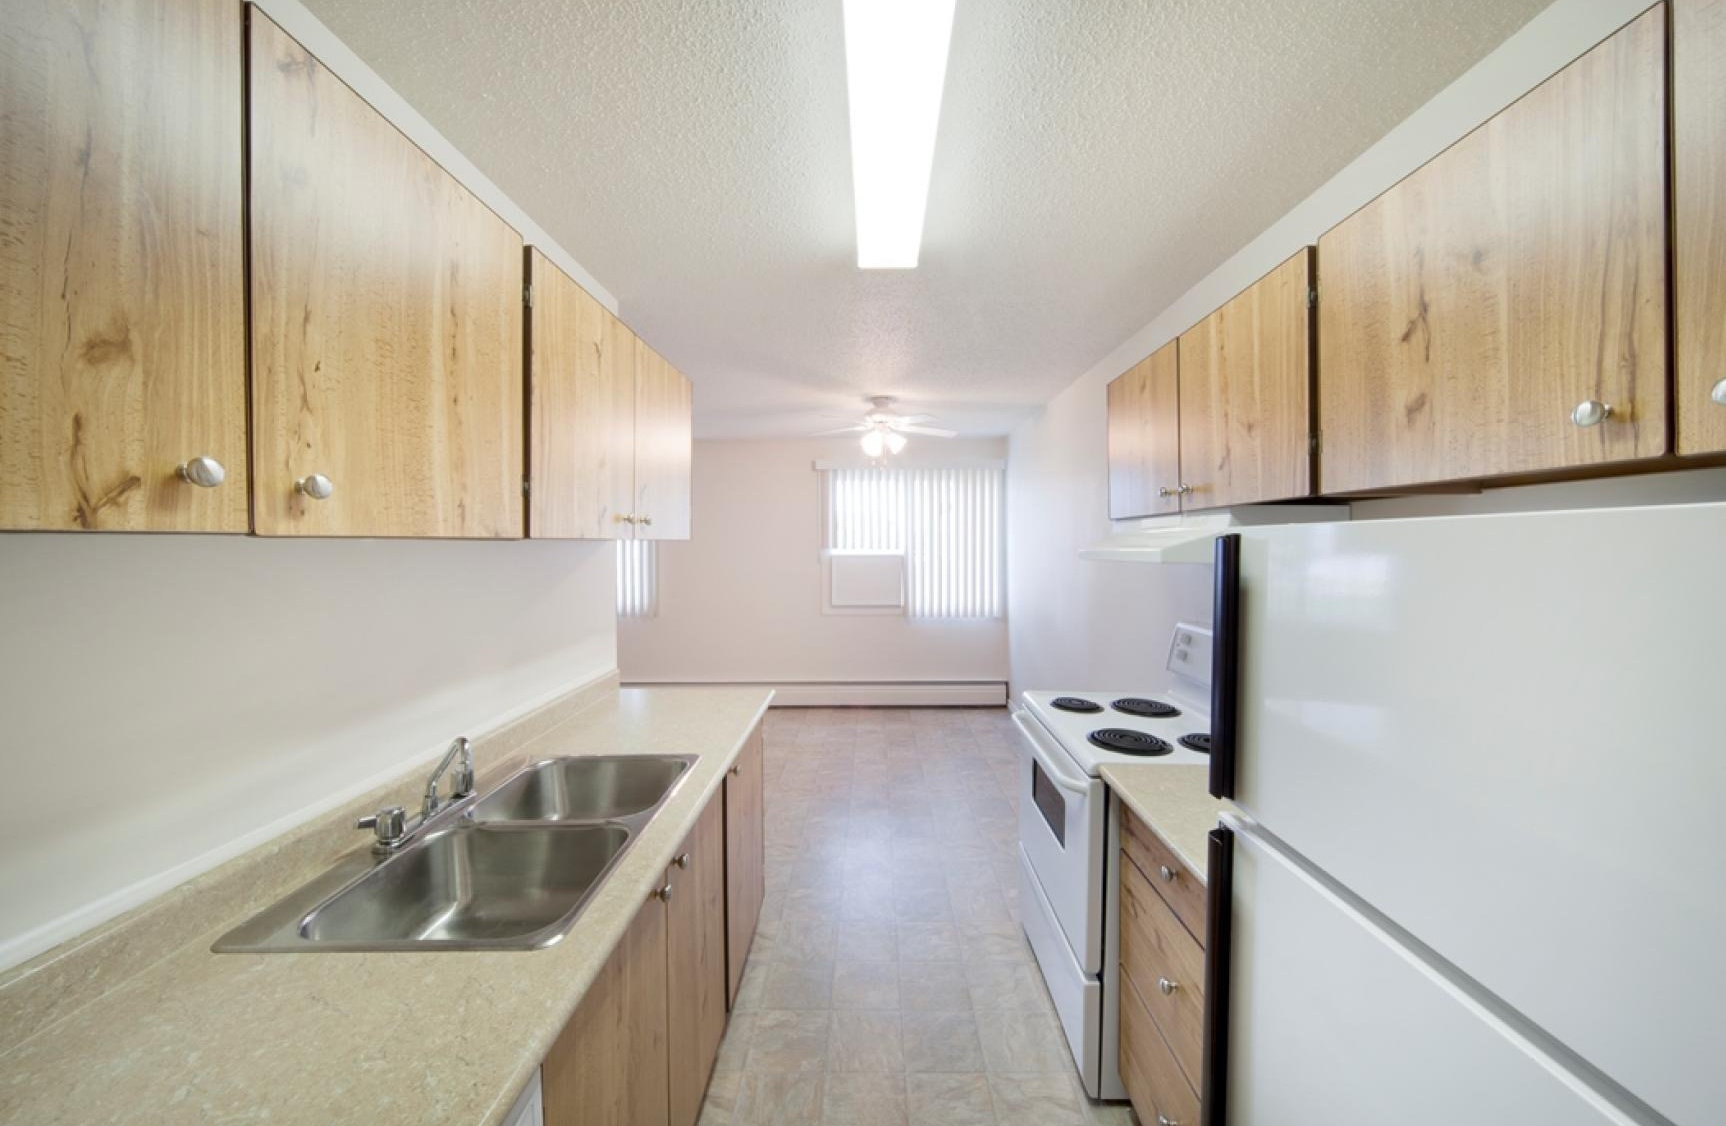 A005 64 Corbitt Way in Medicine Hat, AB is Now Available